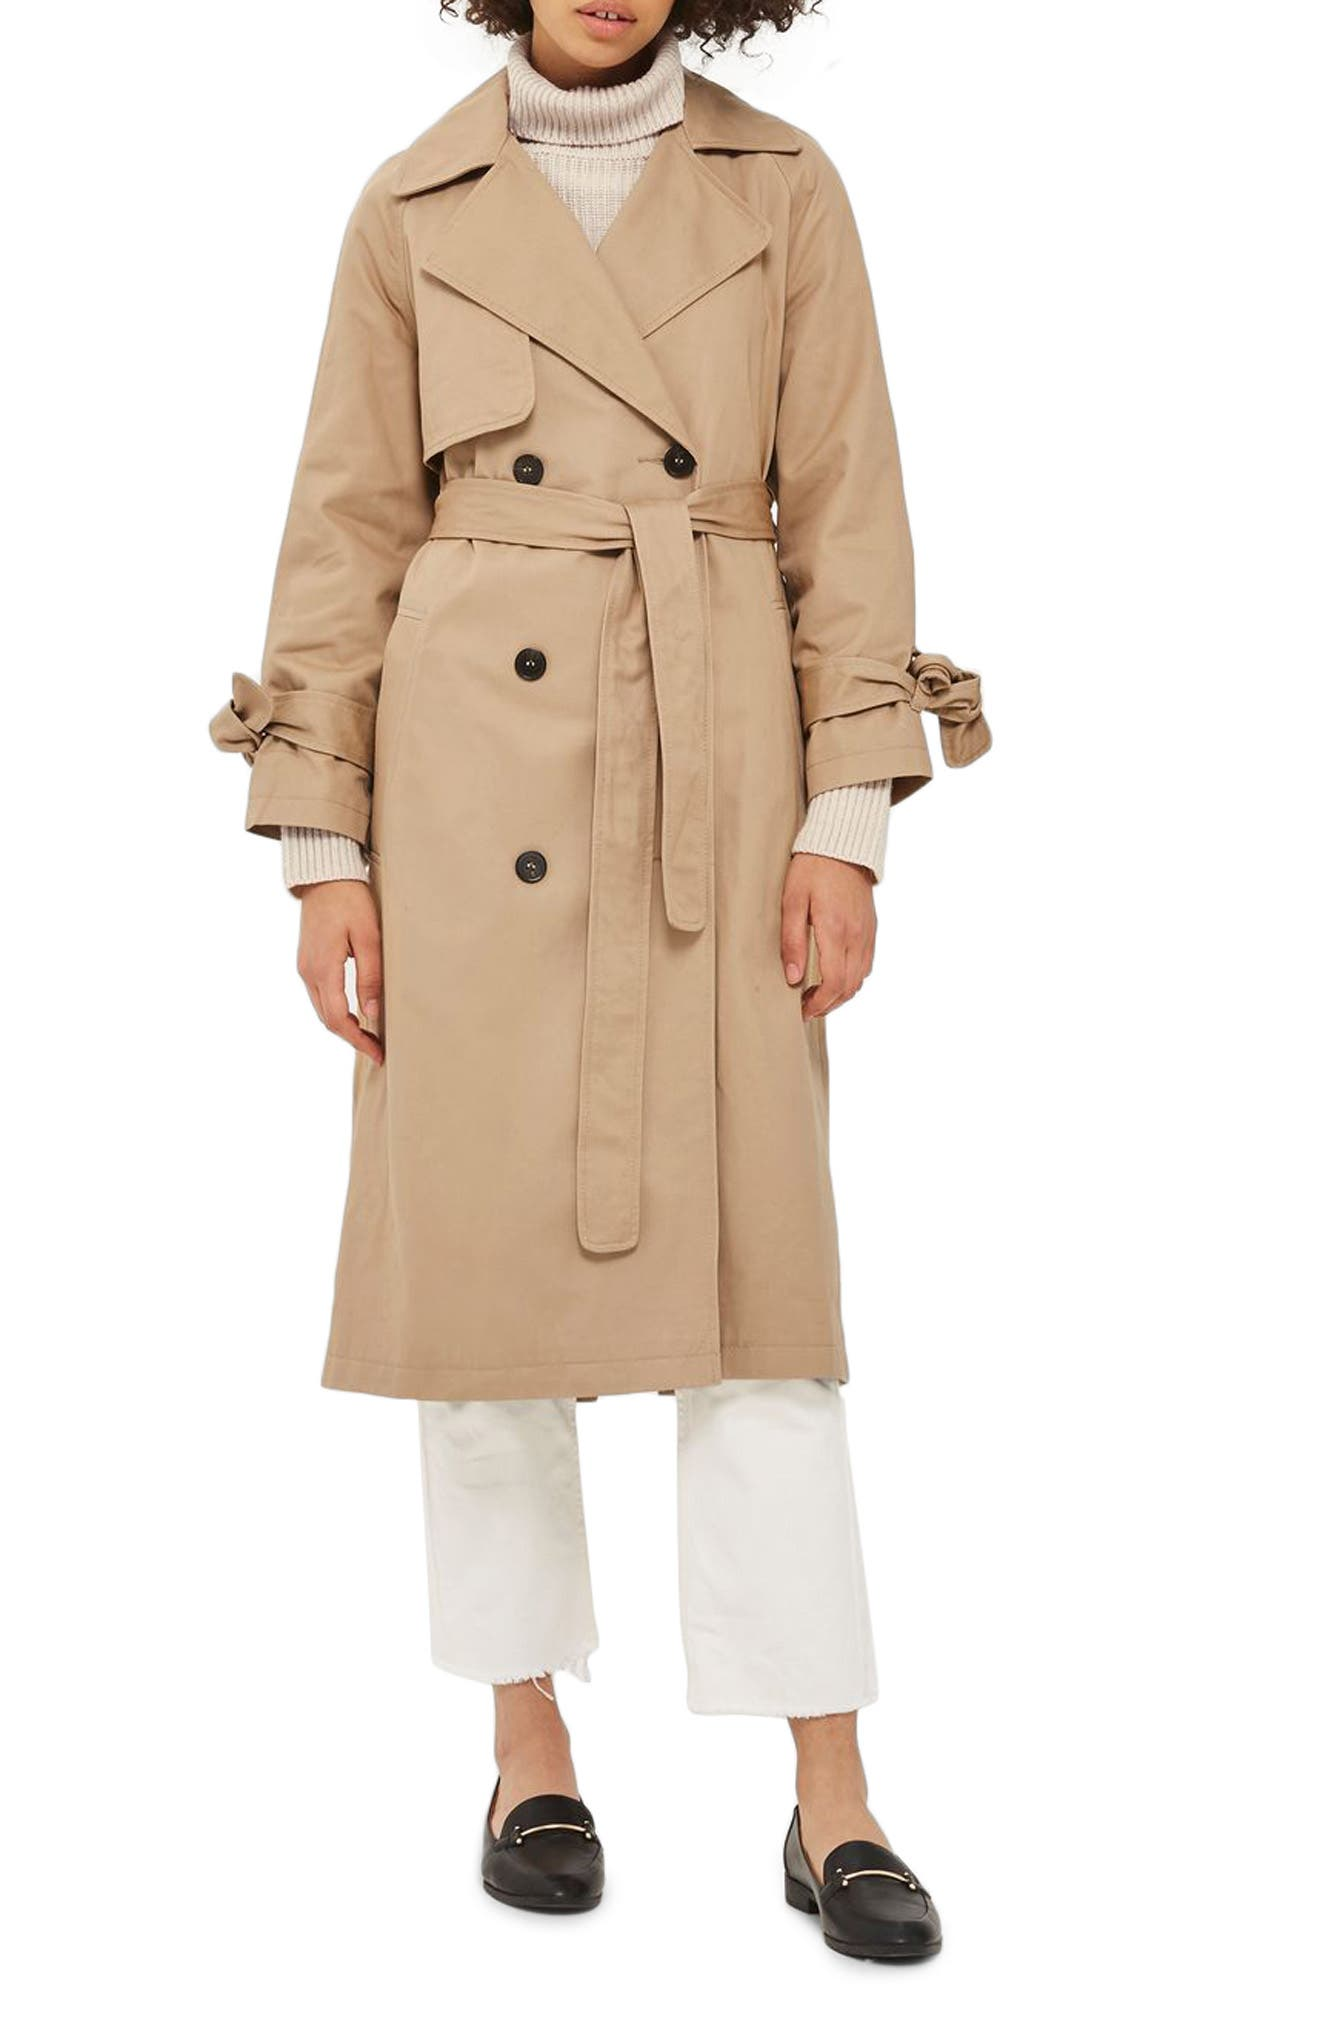 Alternate Image 1 Selected - Topshop Editor's Double Breasted Trench Coat